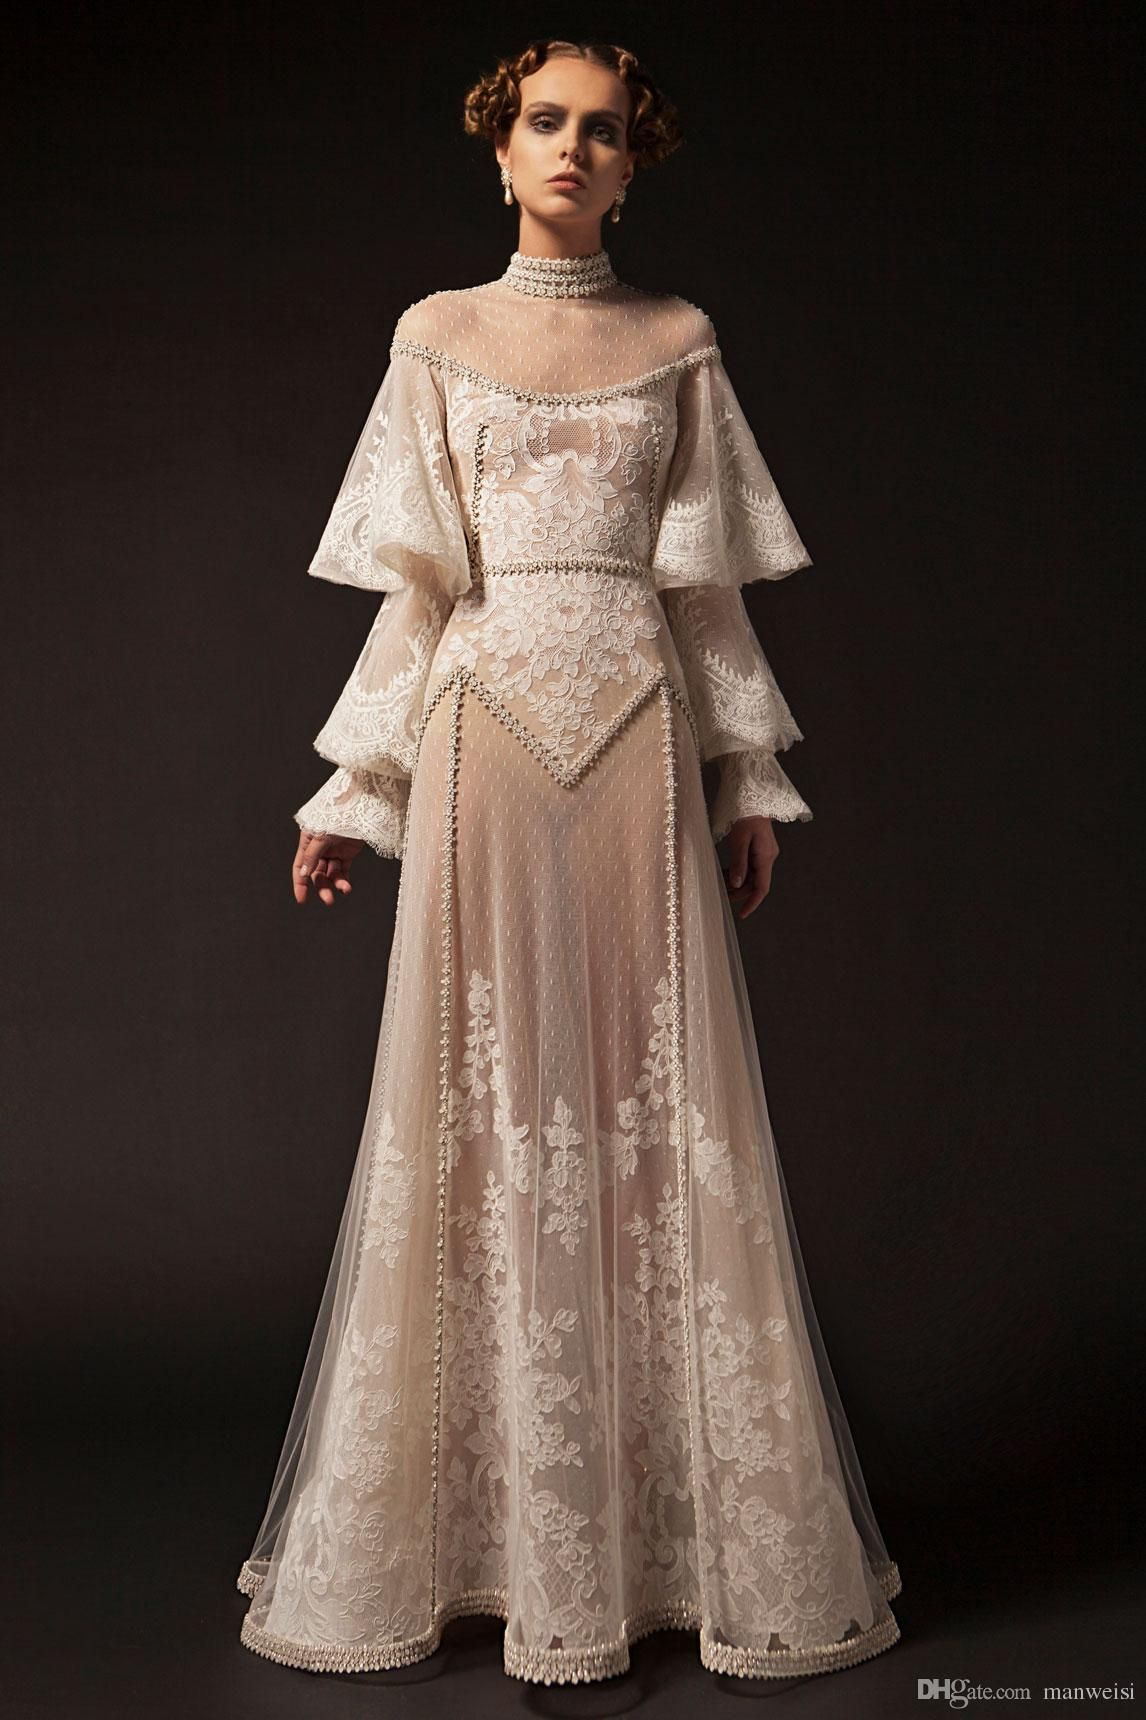 Krikor Jabotian 2019 New Prom Dresses High Neck Lace Applique Long Sleeve Beaded Formal Party Dress Vintage Pageant Evening Gowns From Manweisi 155 83 Dhgat After Prom Dresses 50s Prom Dresses Pageant Evening Gowns [ 1720 x 1146 Pixel ]